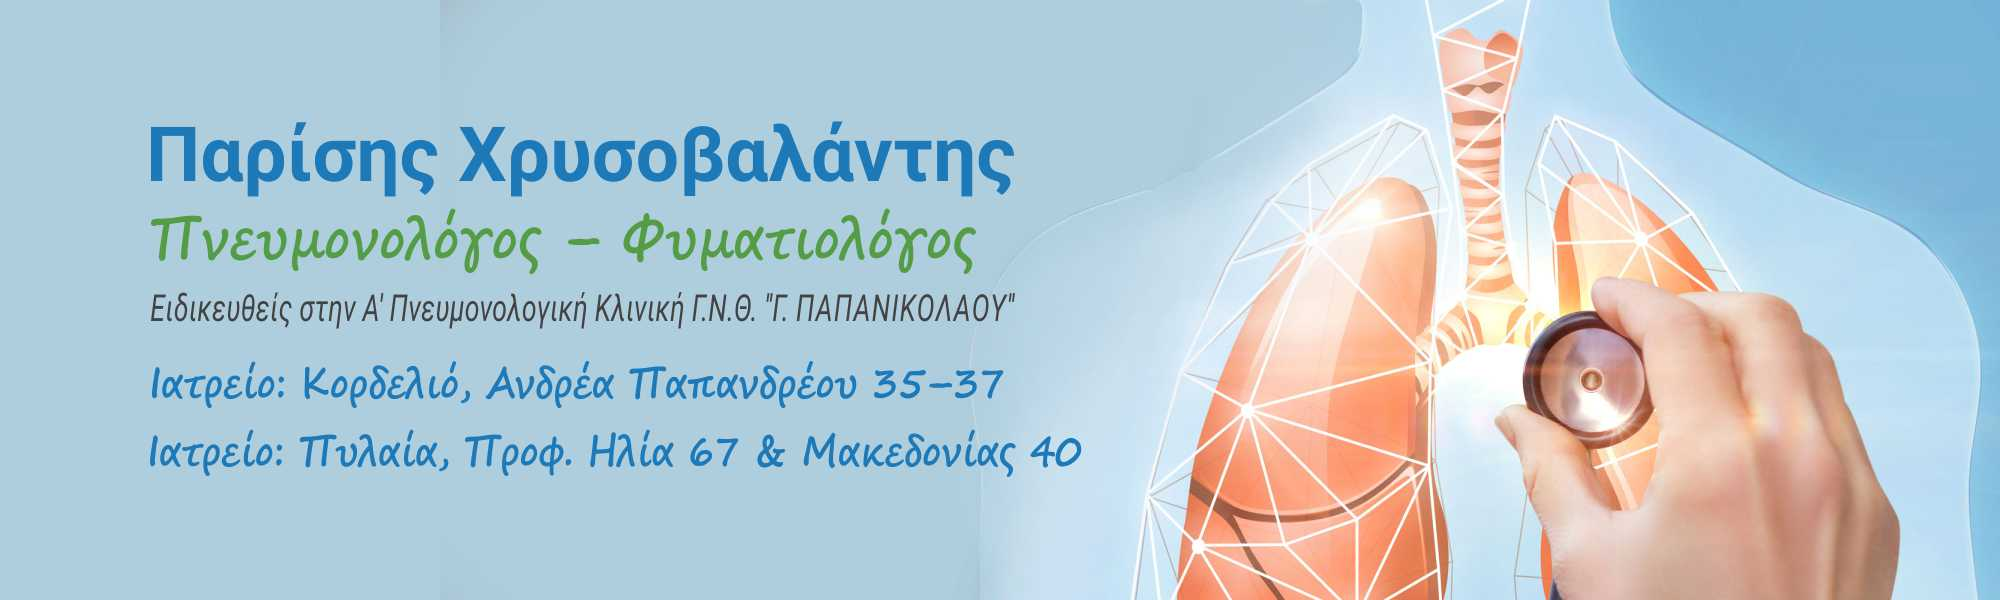 Pulmology-3a-Parisis-Thessaloniki